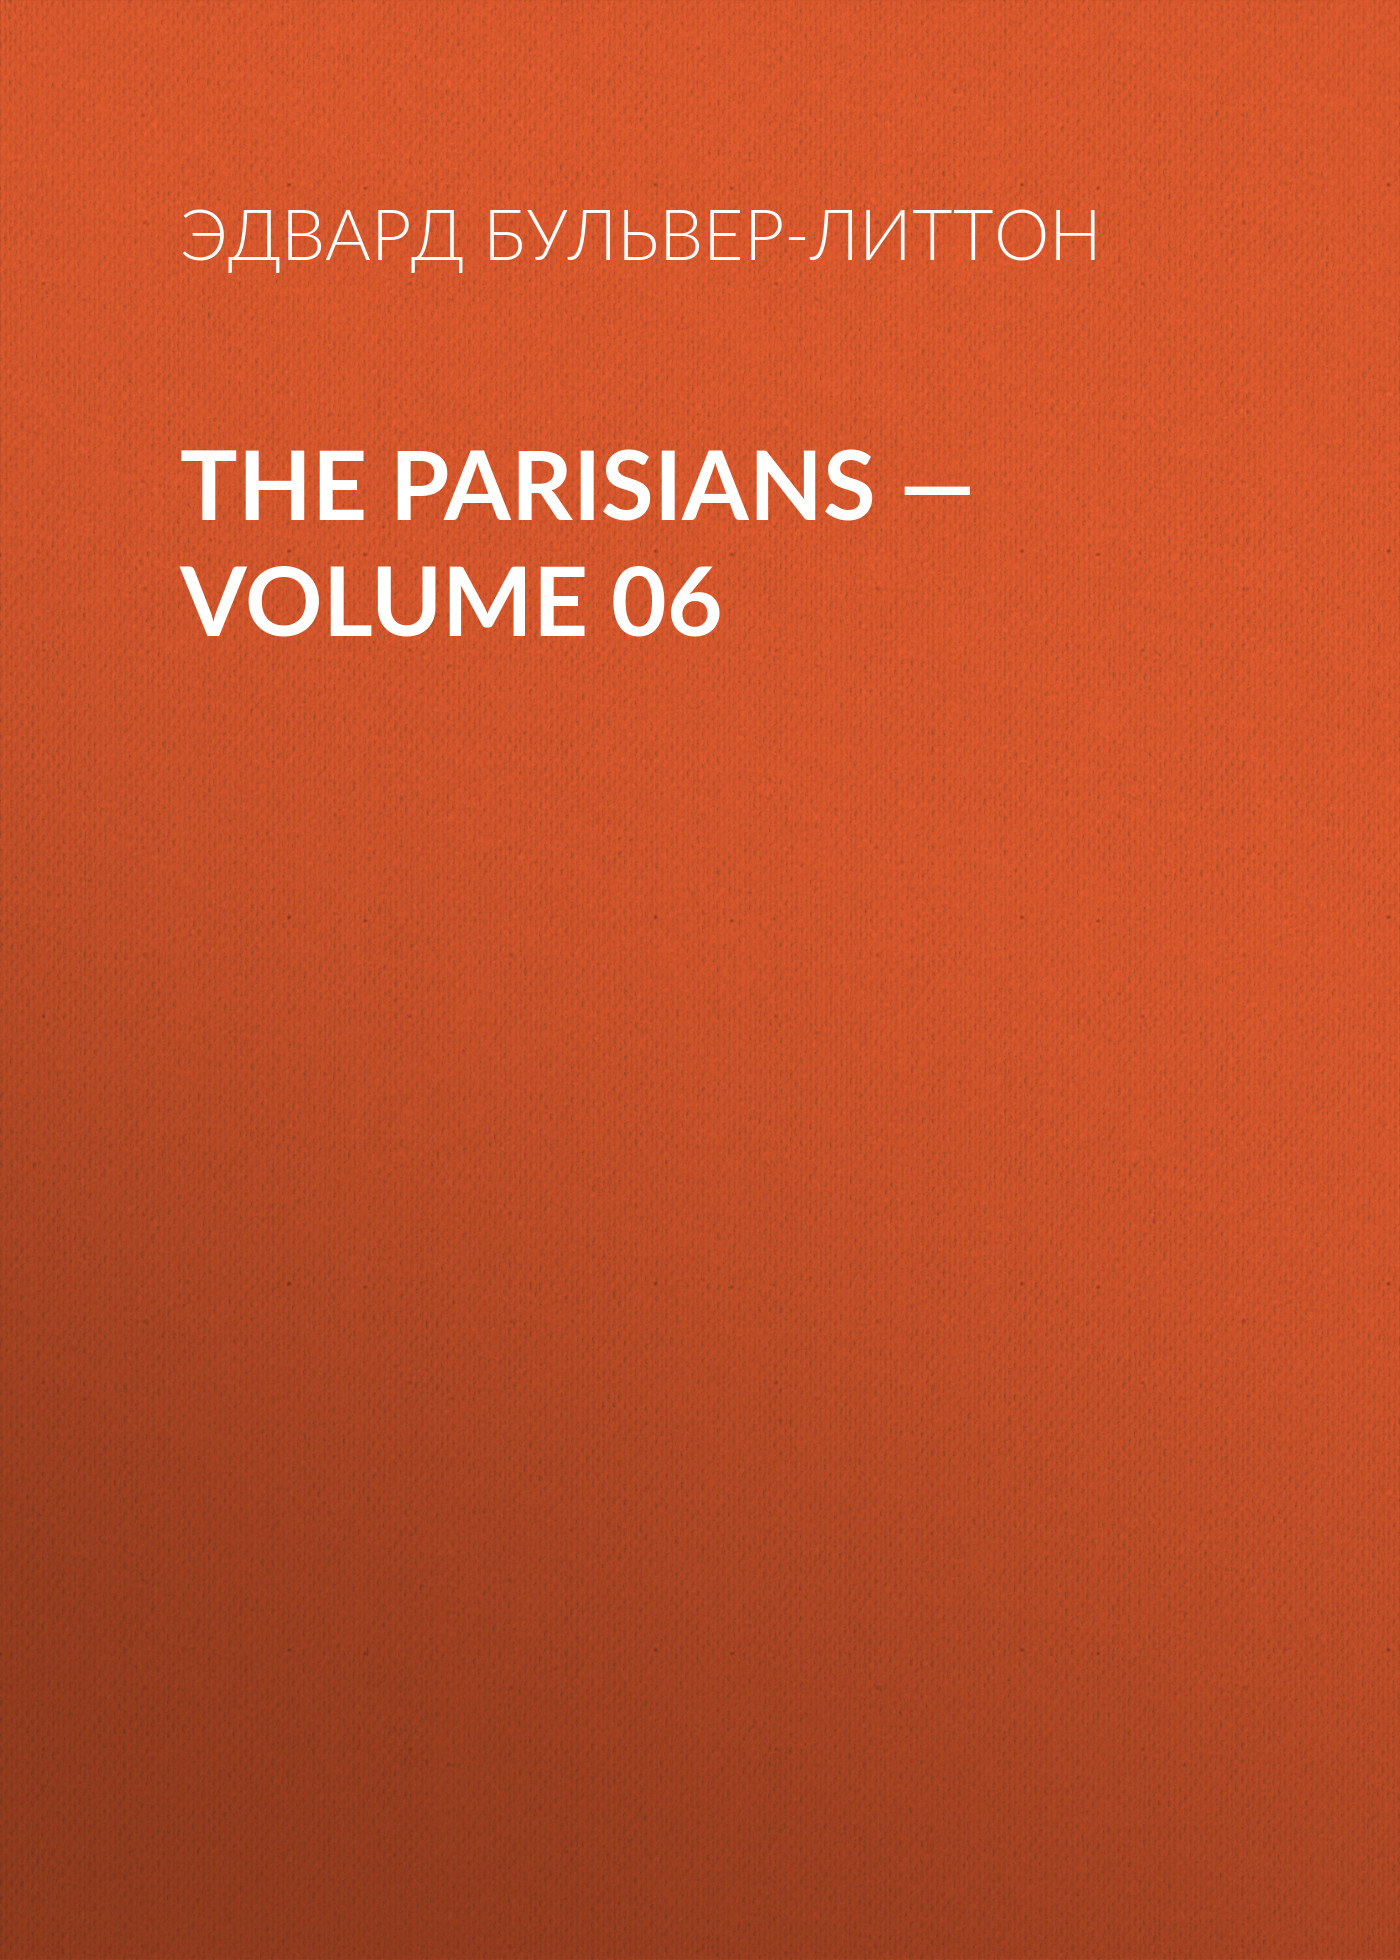 The Parisians — Volume 06